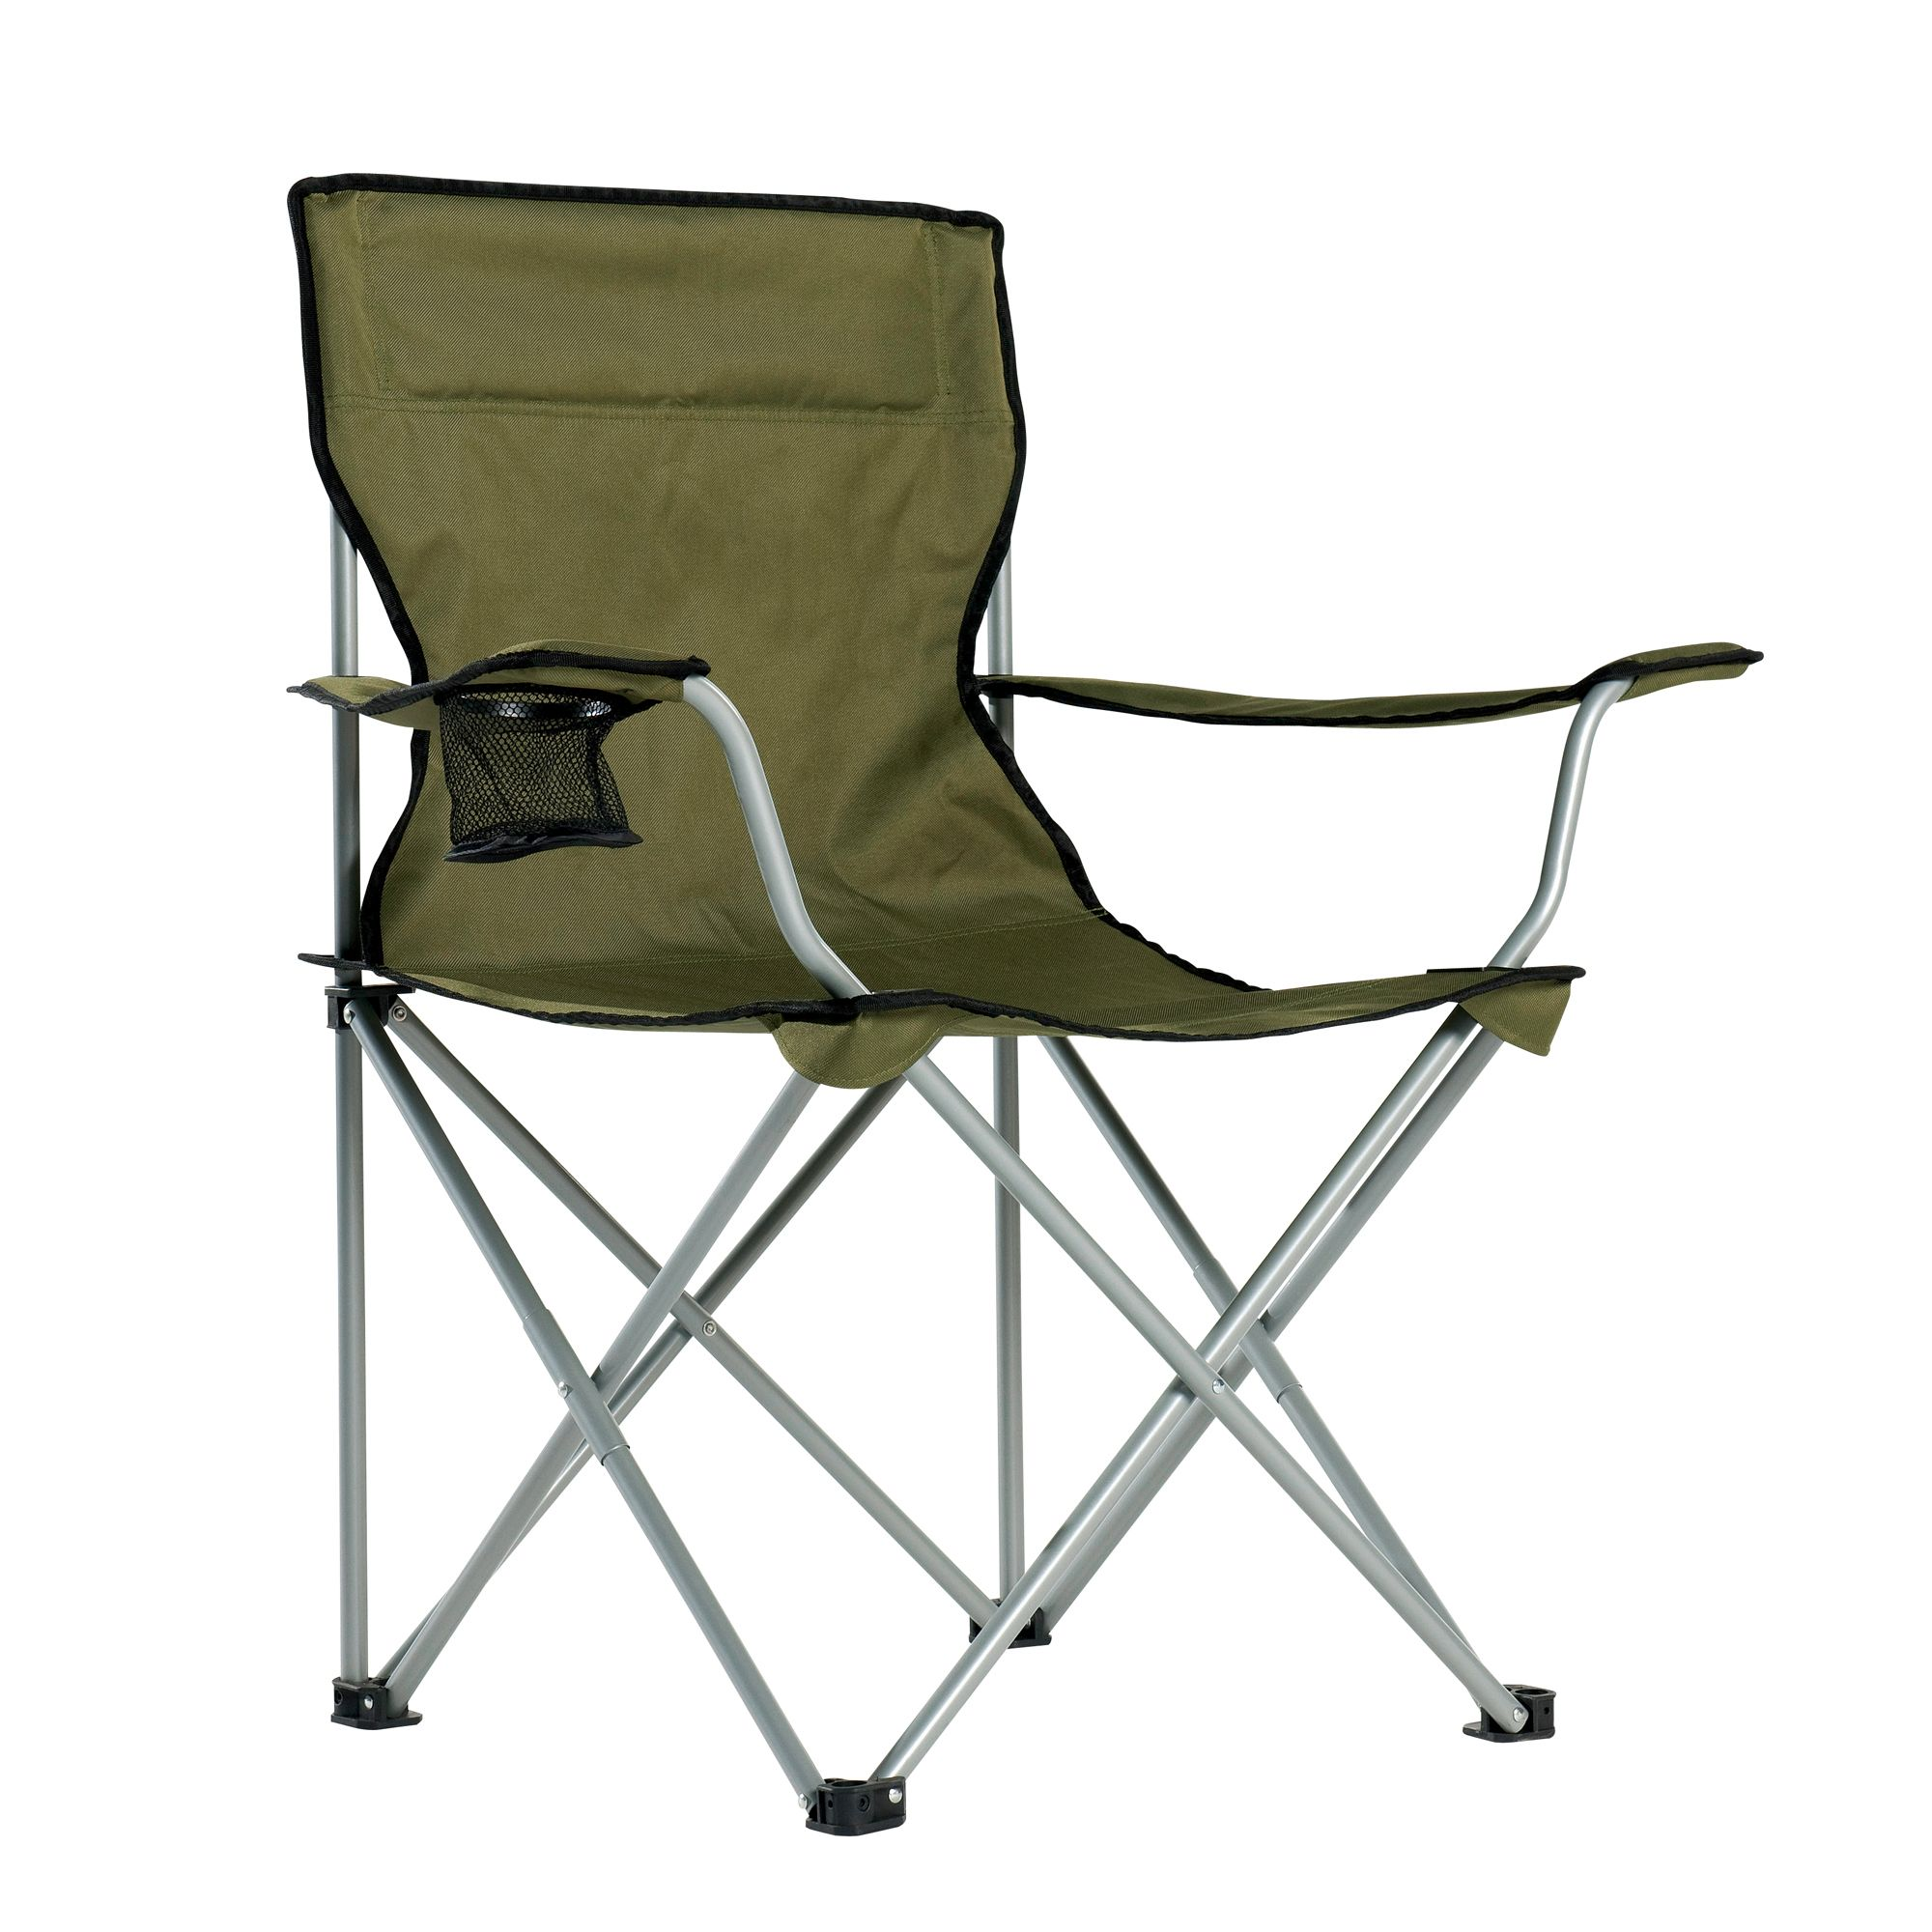 sears lounge chairs chair covers with gold sash green deluxe arm b302kmart